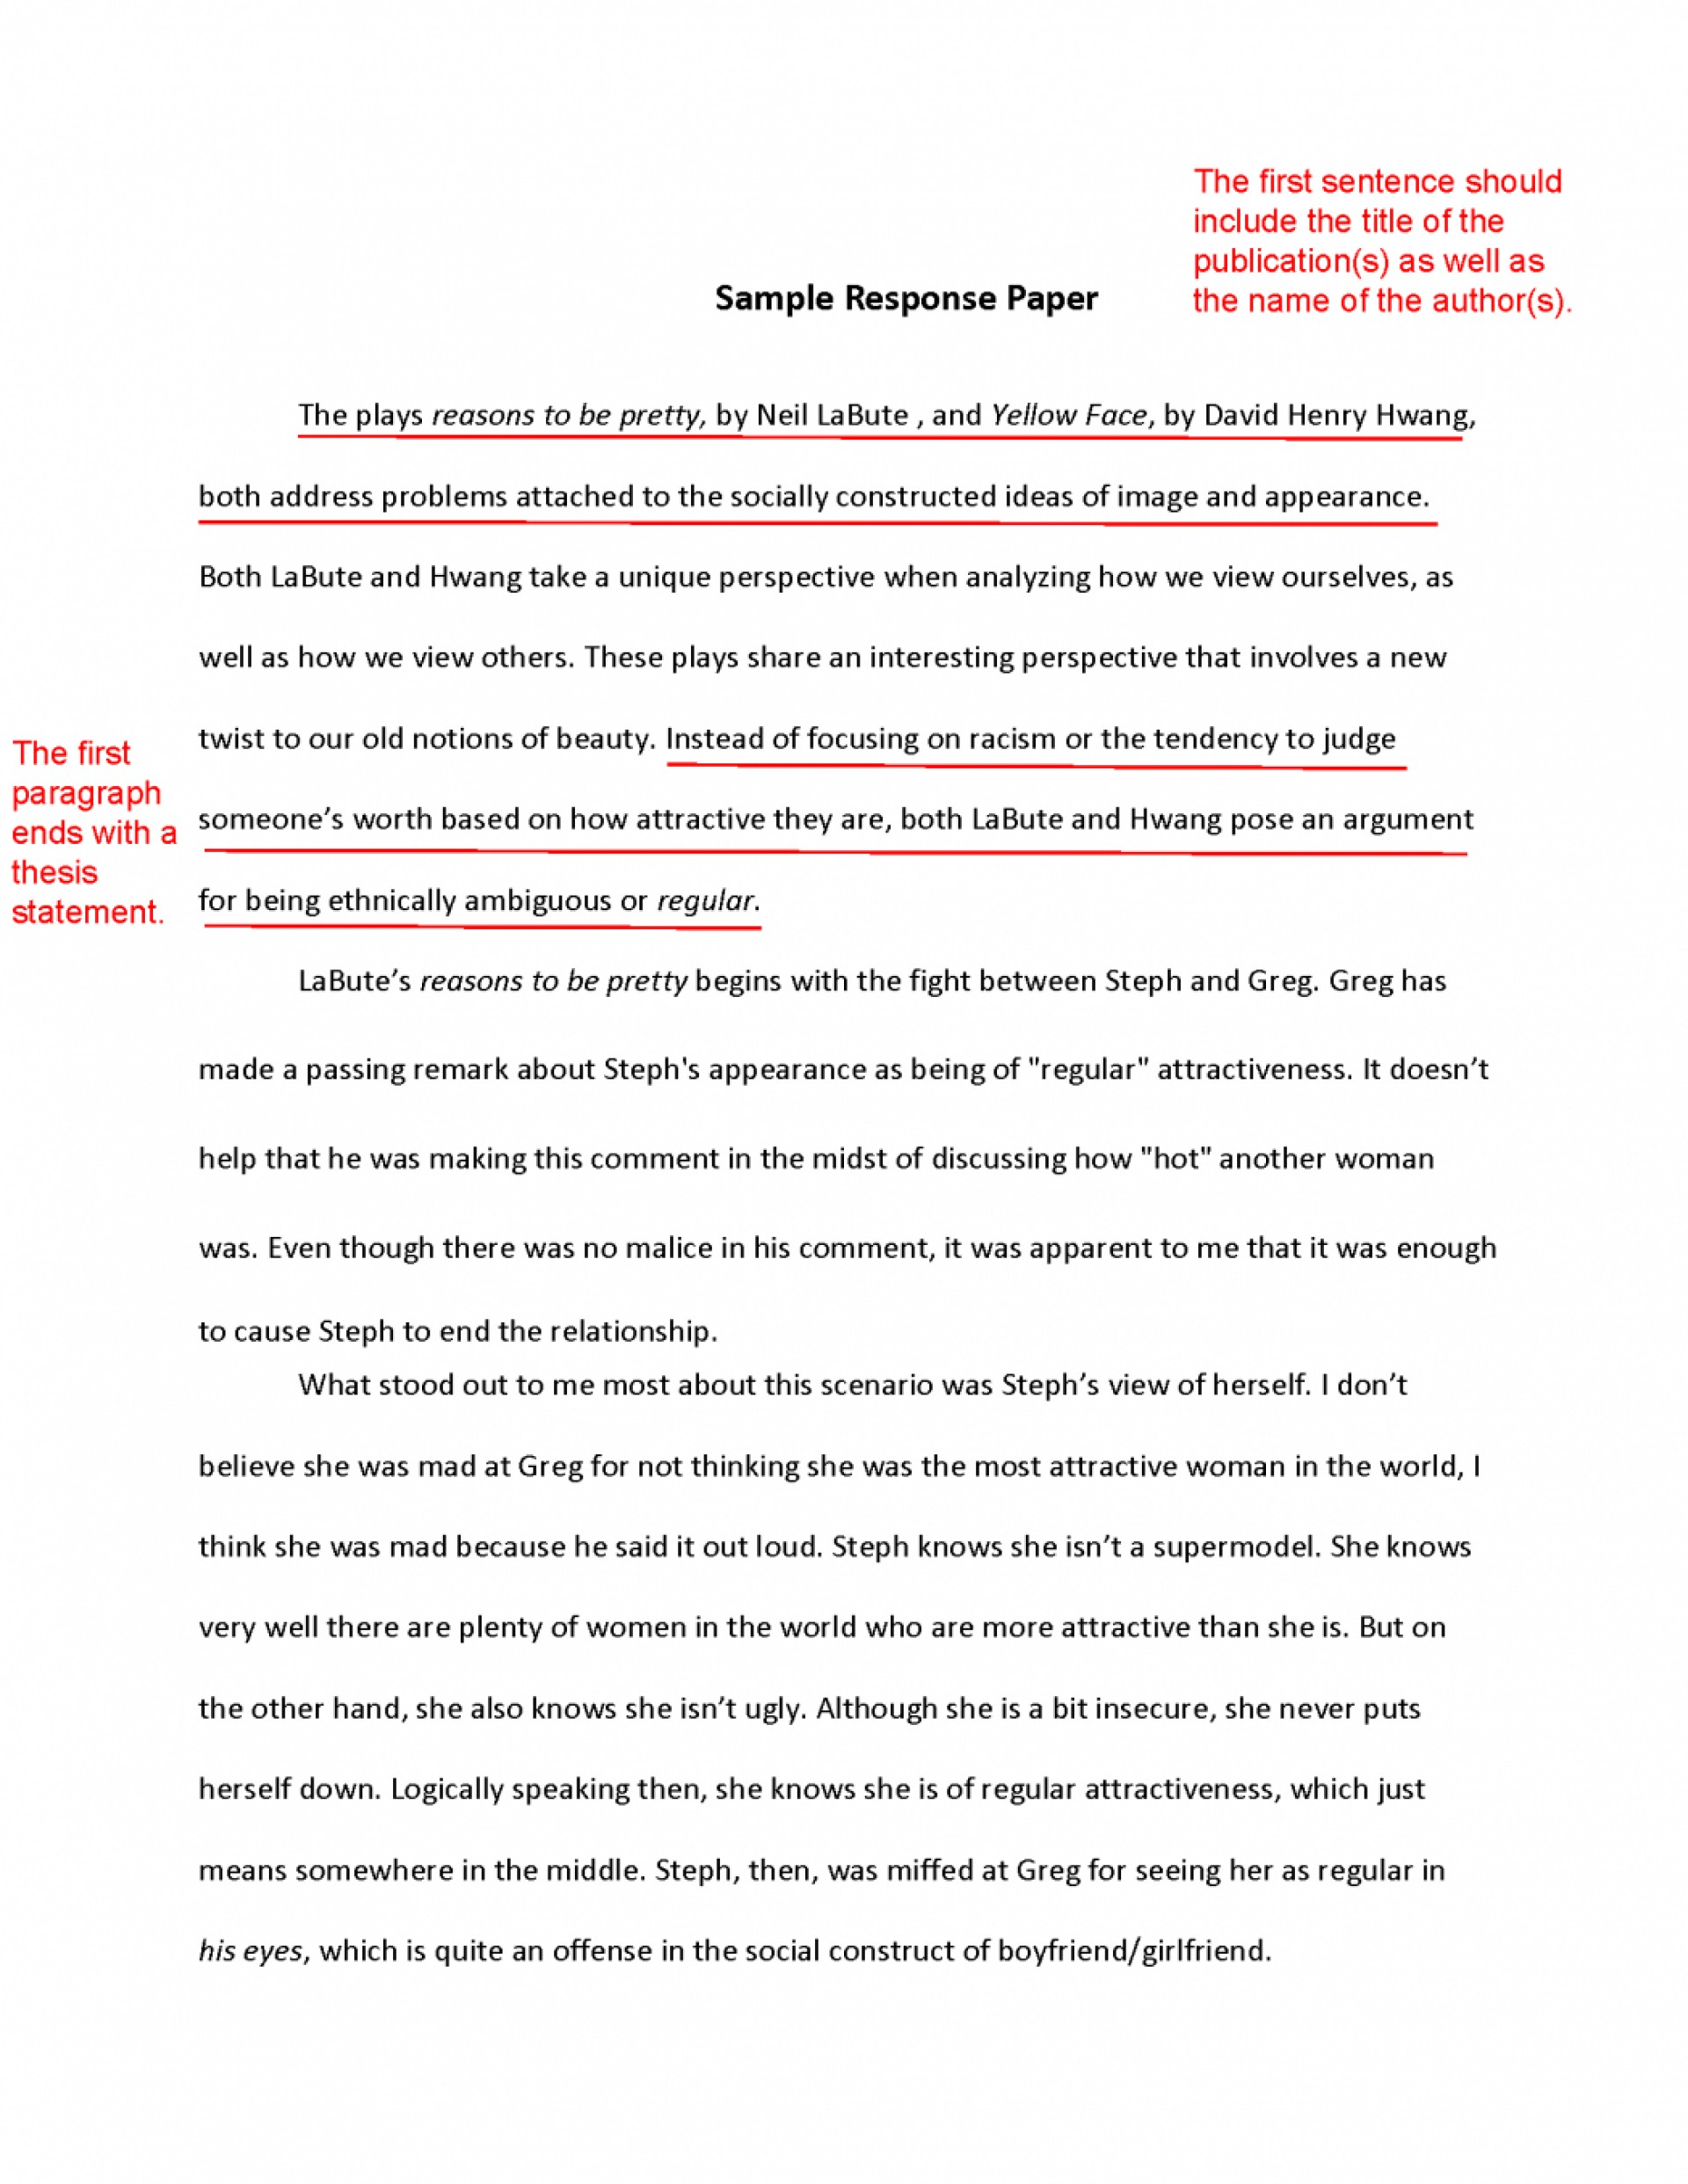 022 Essay Example Good Hooks For Persuasive Essays Sample Paper Great Hook Res What Is On School Uniforms Writing 1048x1356 Striking Argumentative Examples 1920